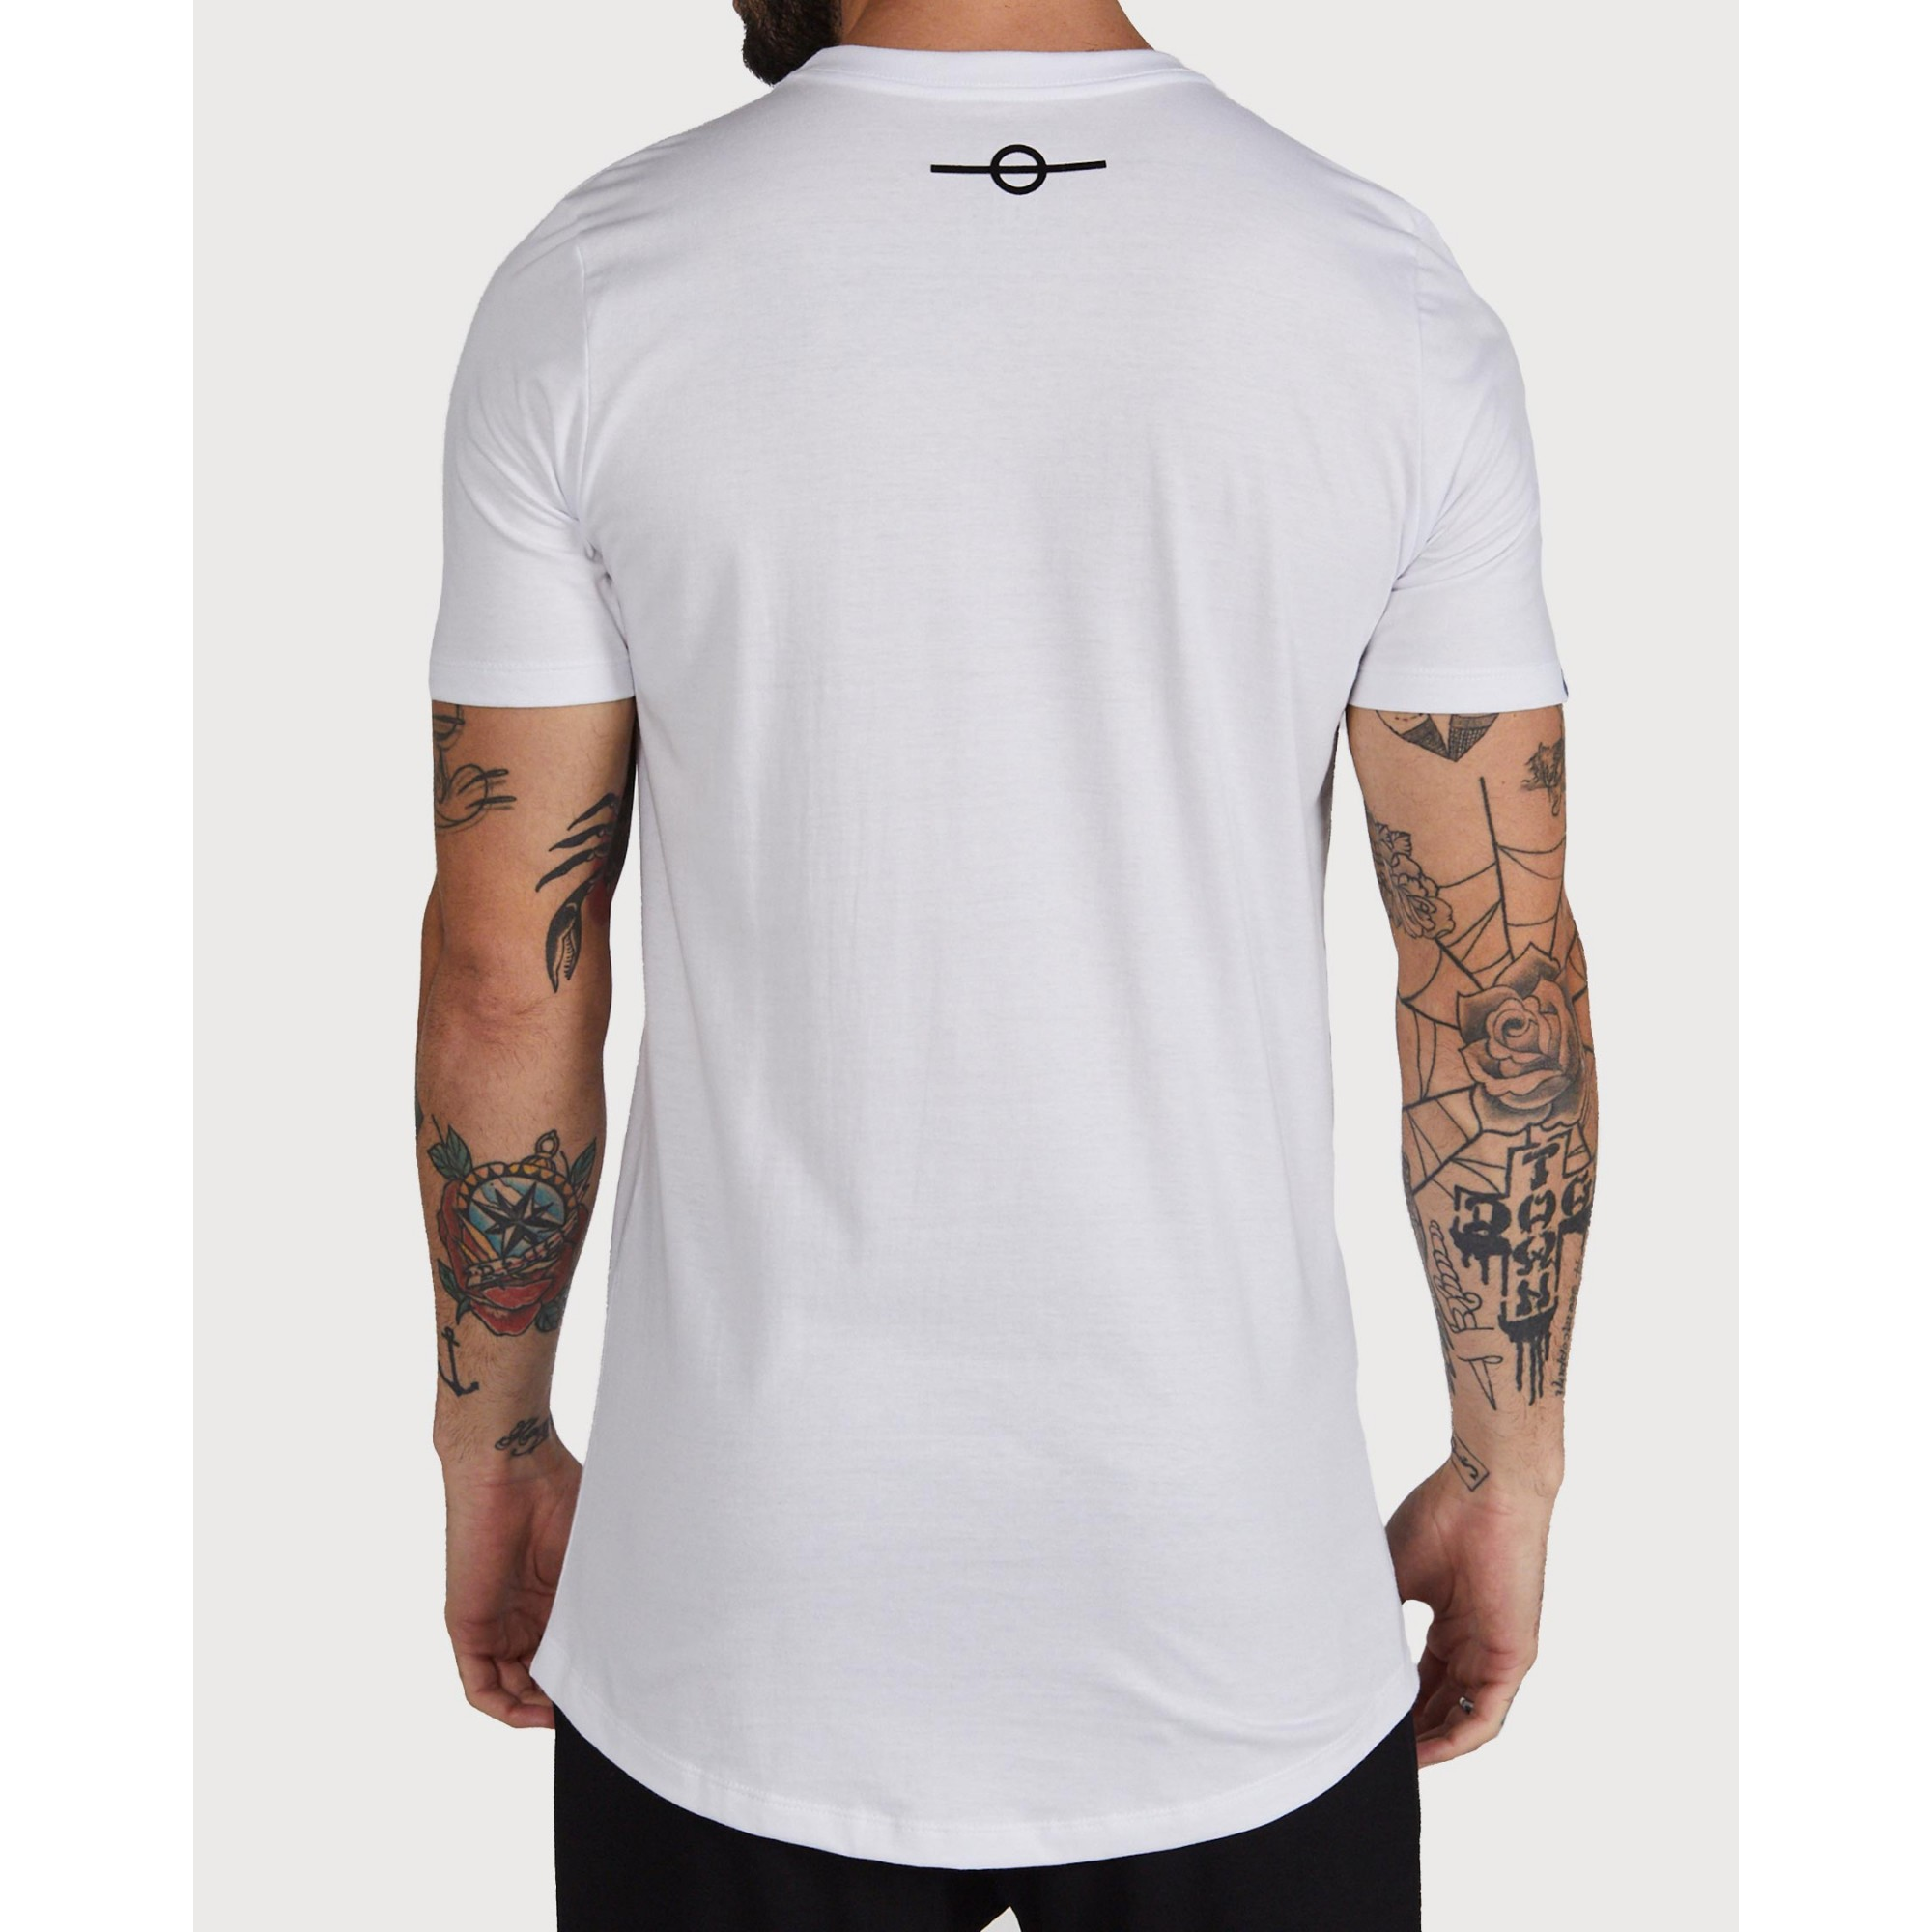 Camiseta Buh Fire Relevo White